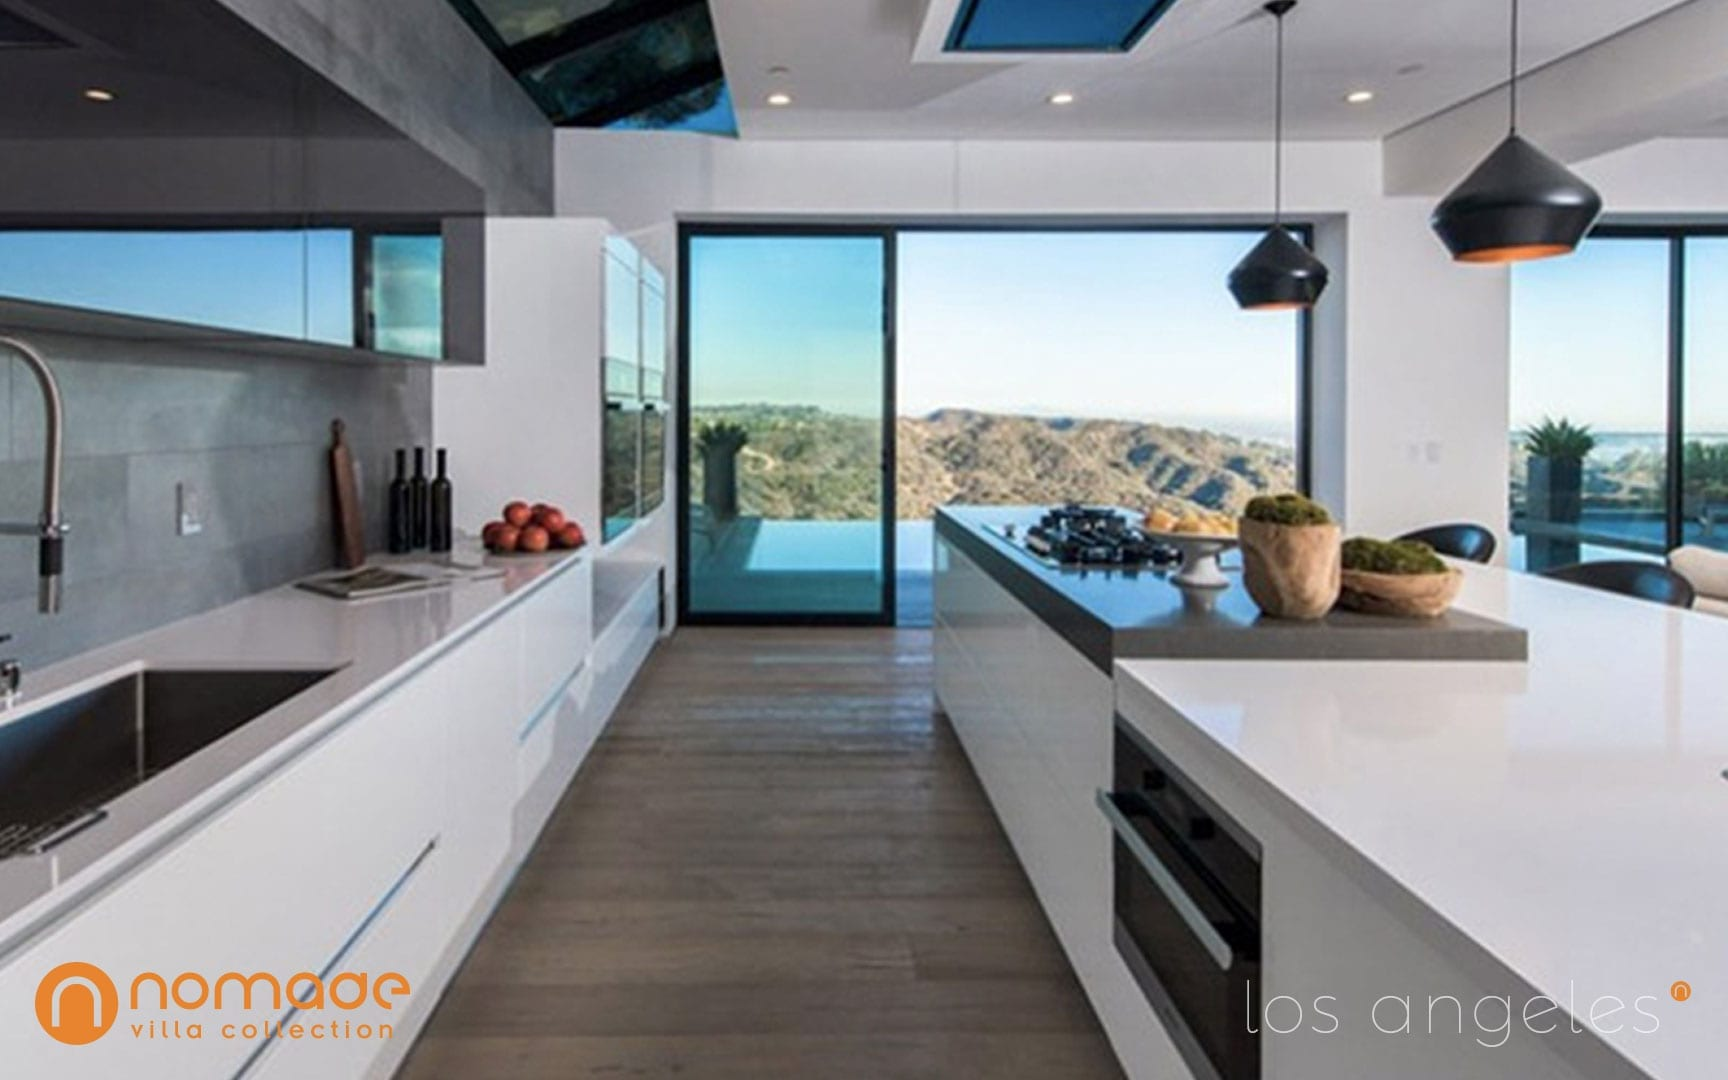 Casa Roscomare - Luxury Vacation Home in Los Angeles - Nomade Villa Collection